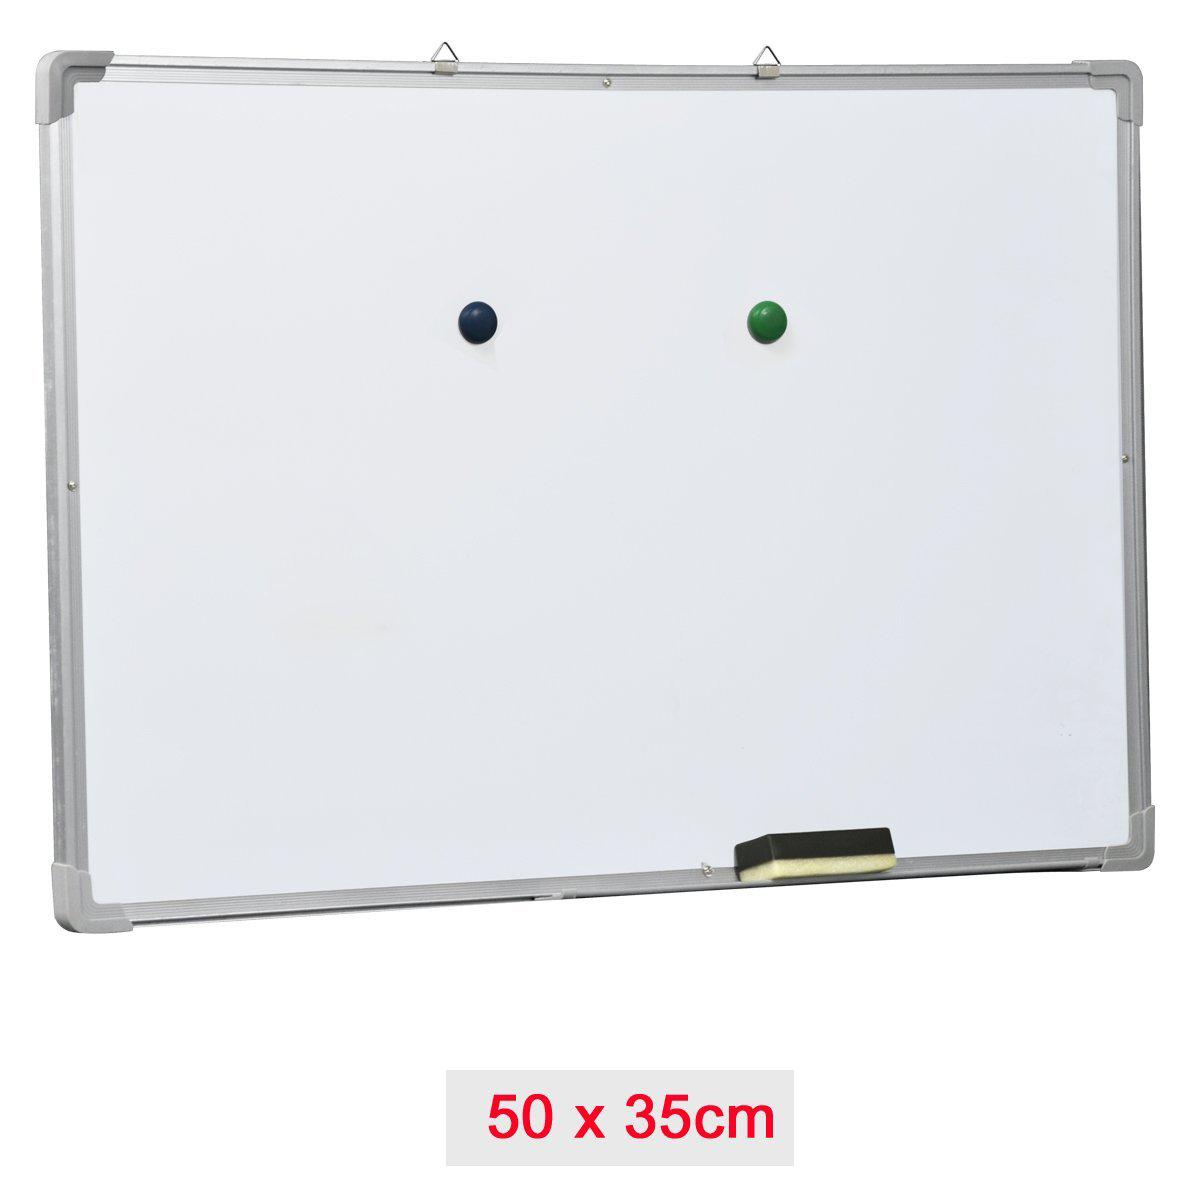 Whiteboard for sale - Flipchart prices, brands & review in ...